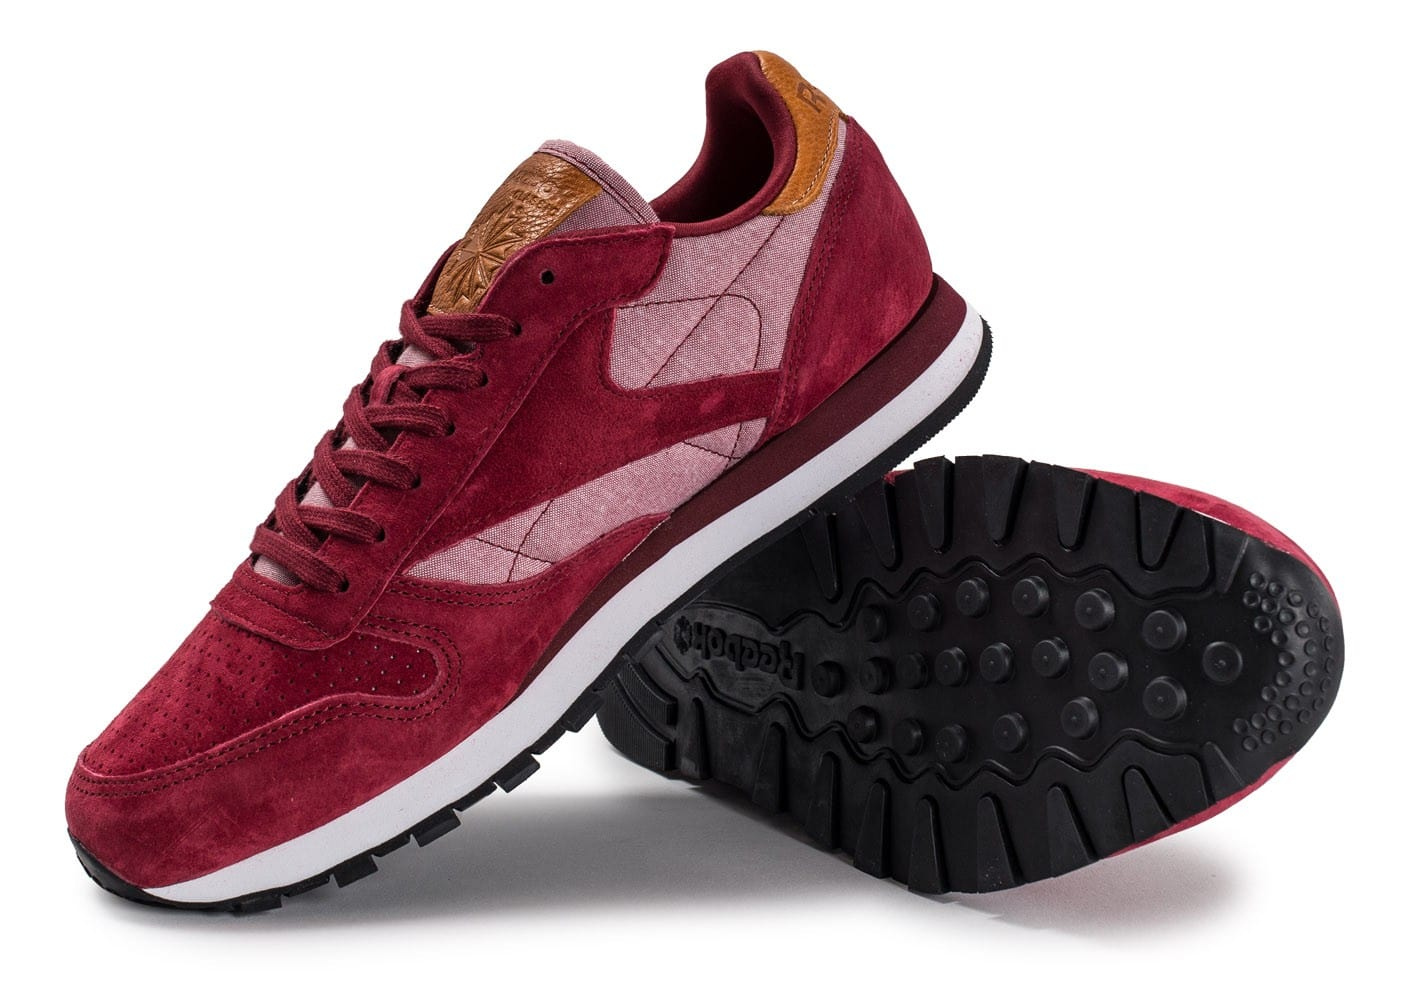 Reebok Classic Leather Chambray bordeaux Chaussures